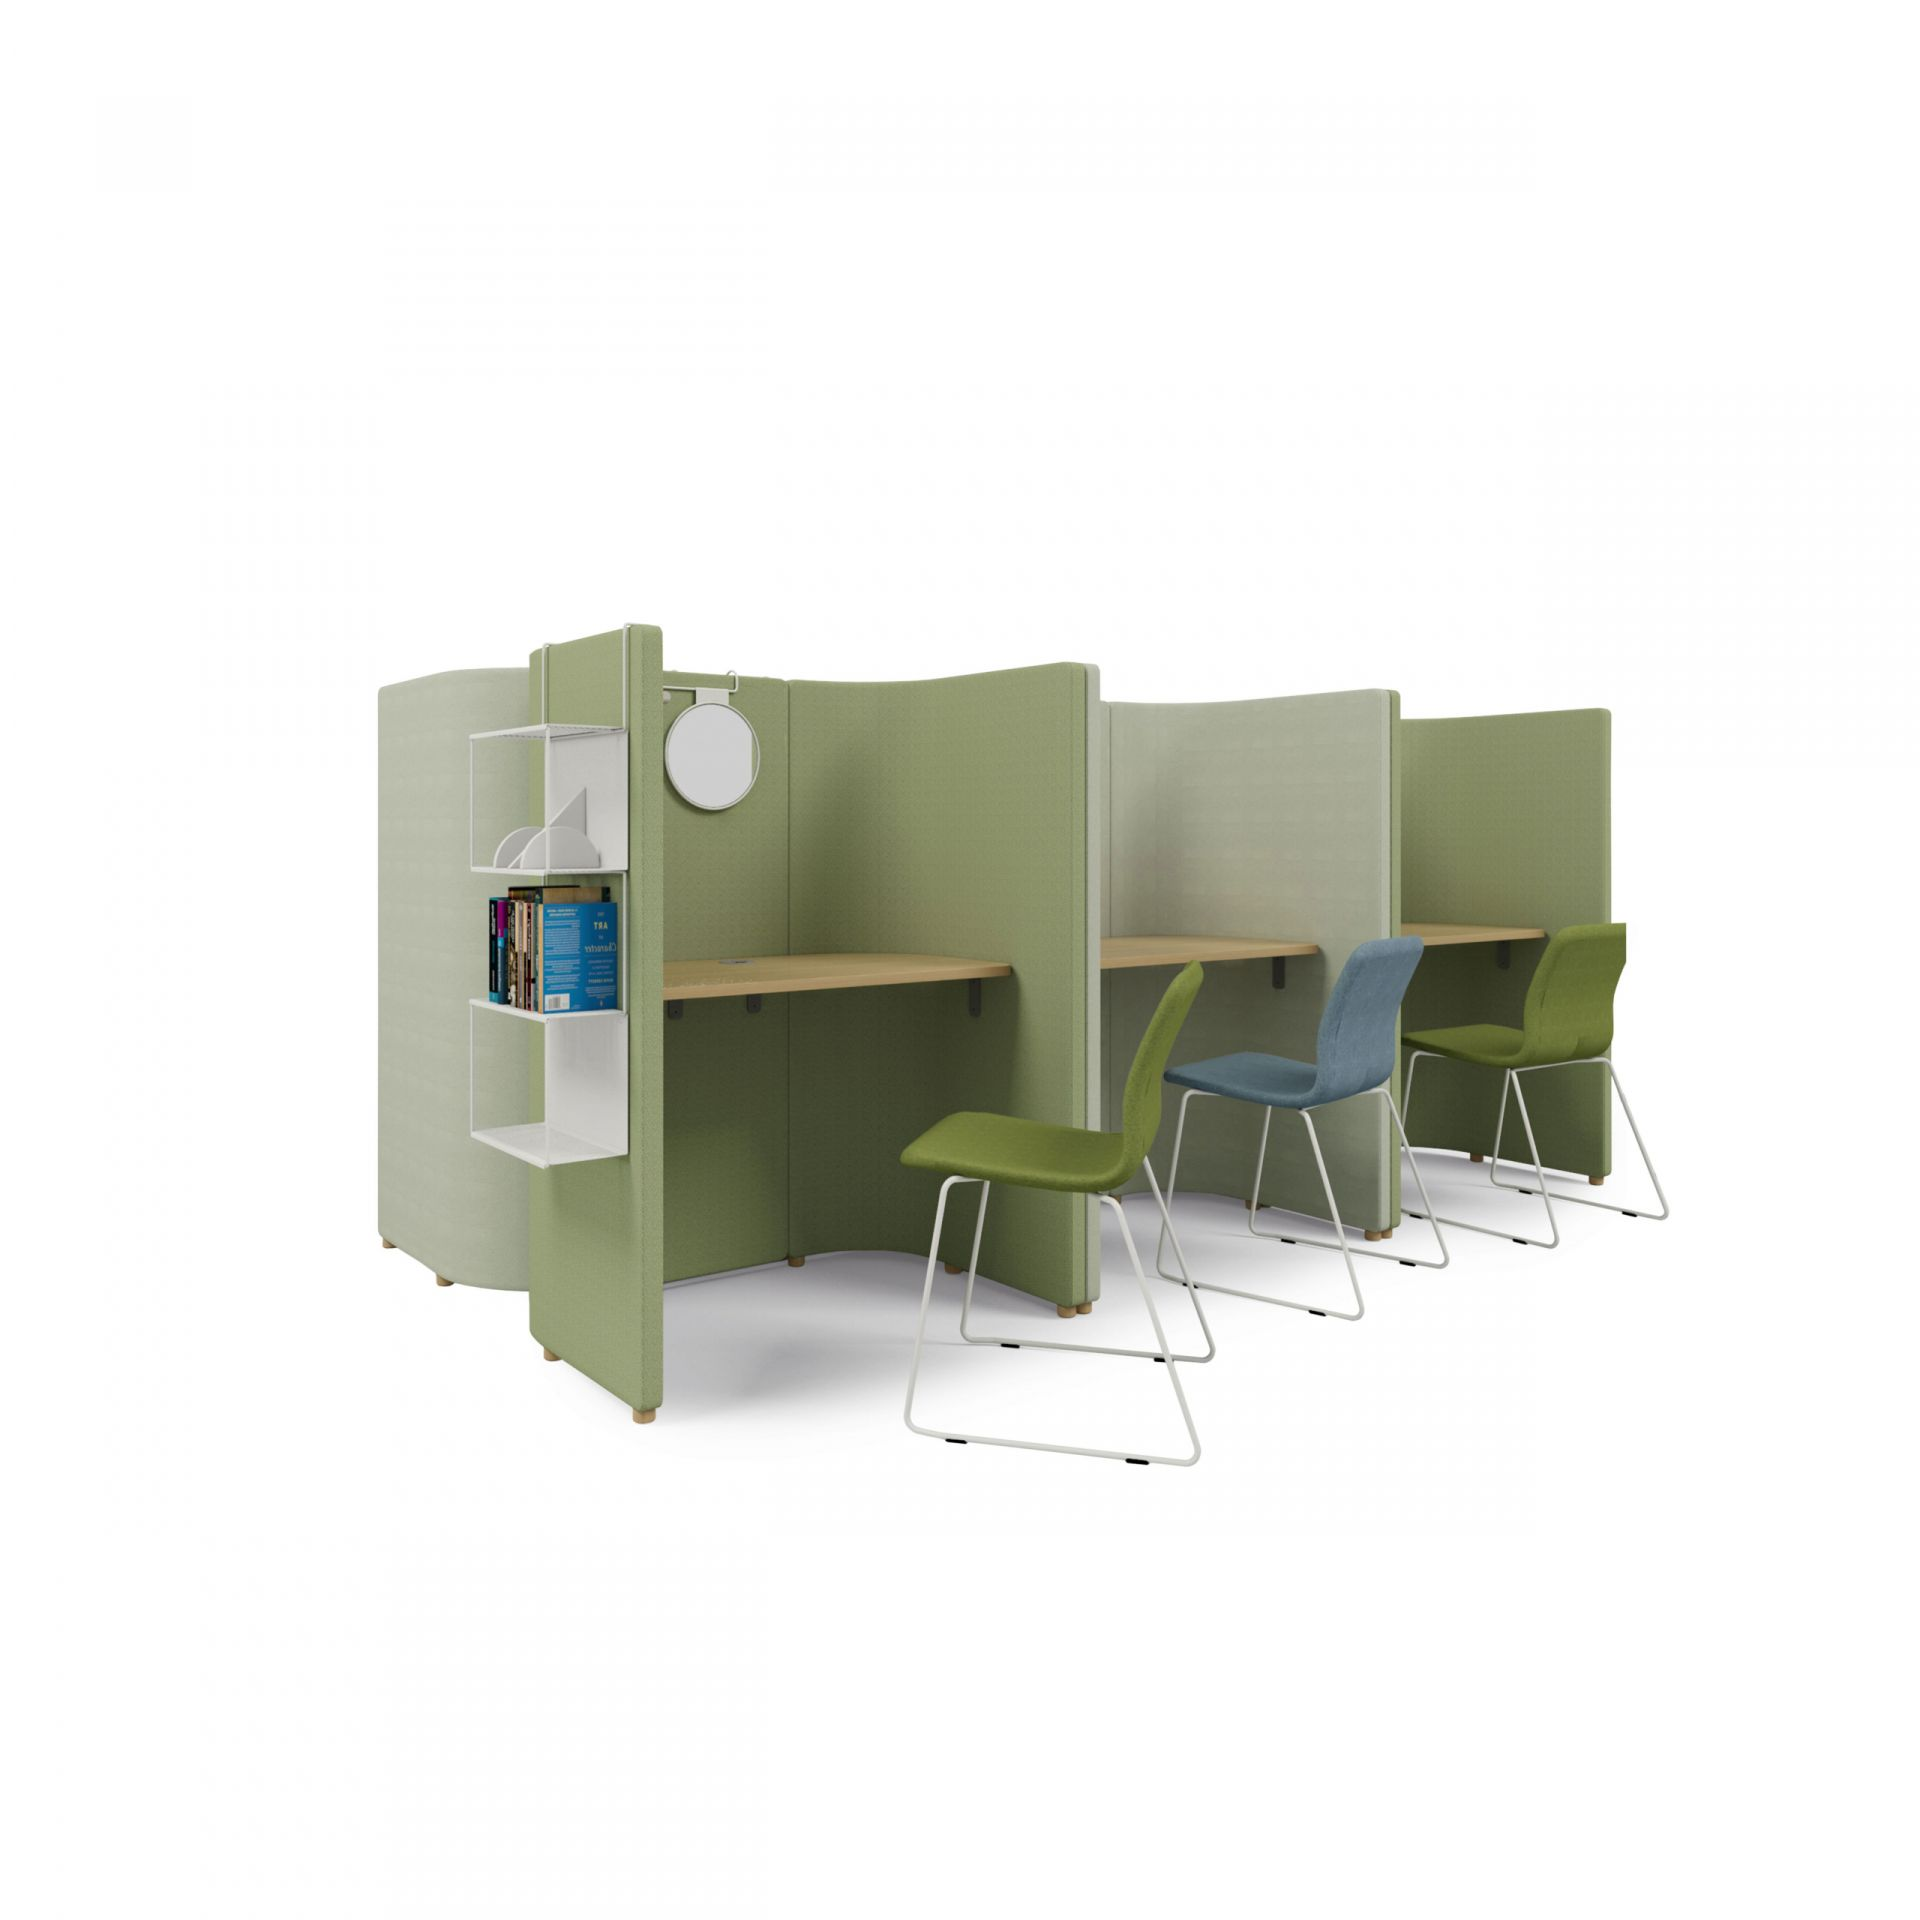 Surround Pods/workstations product image 1